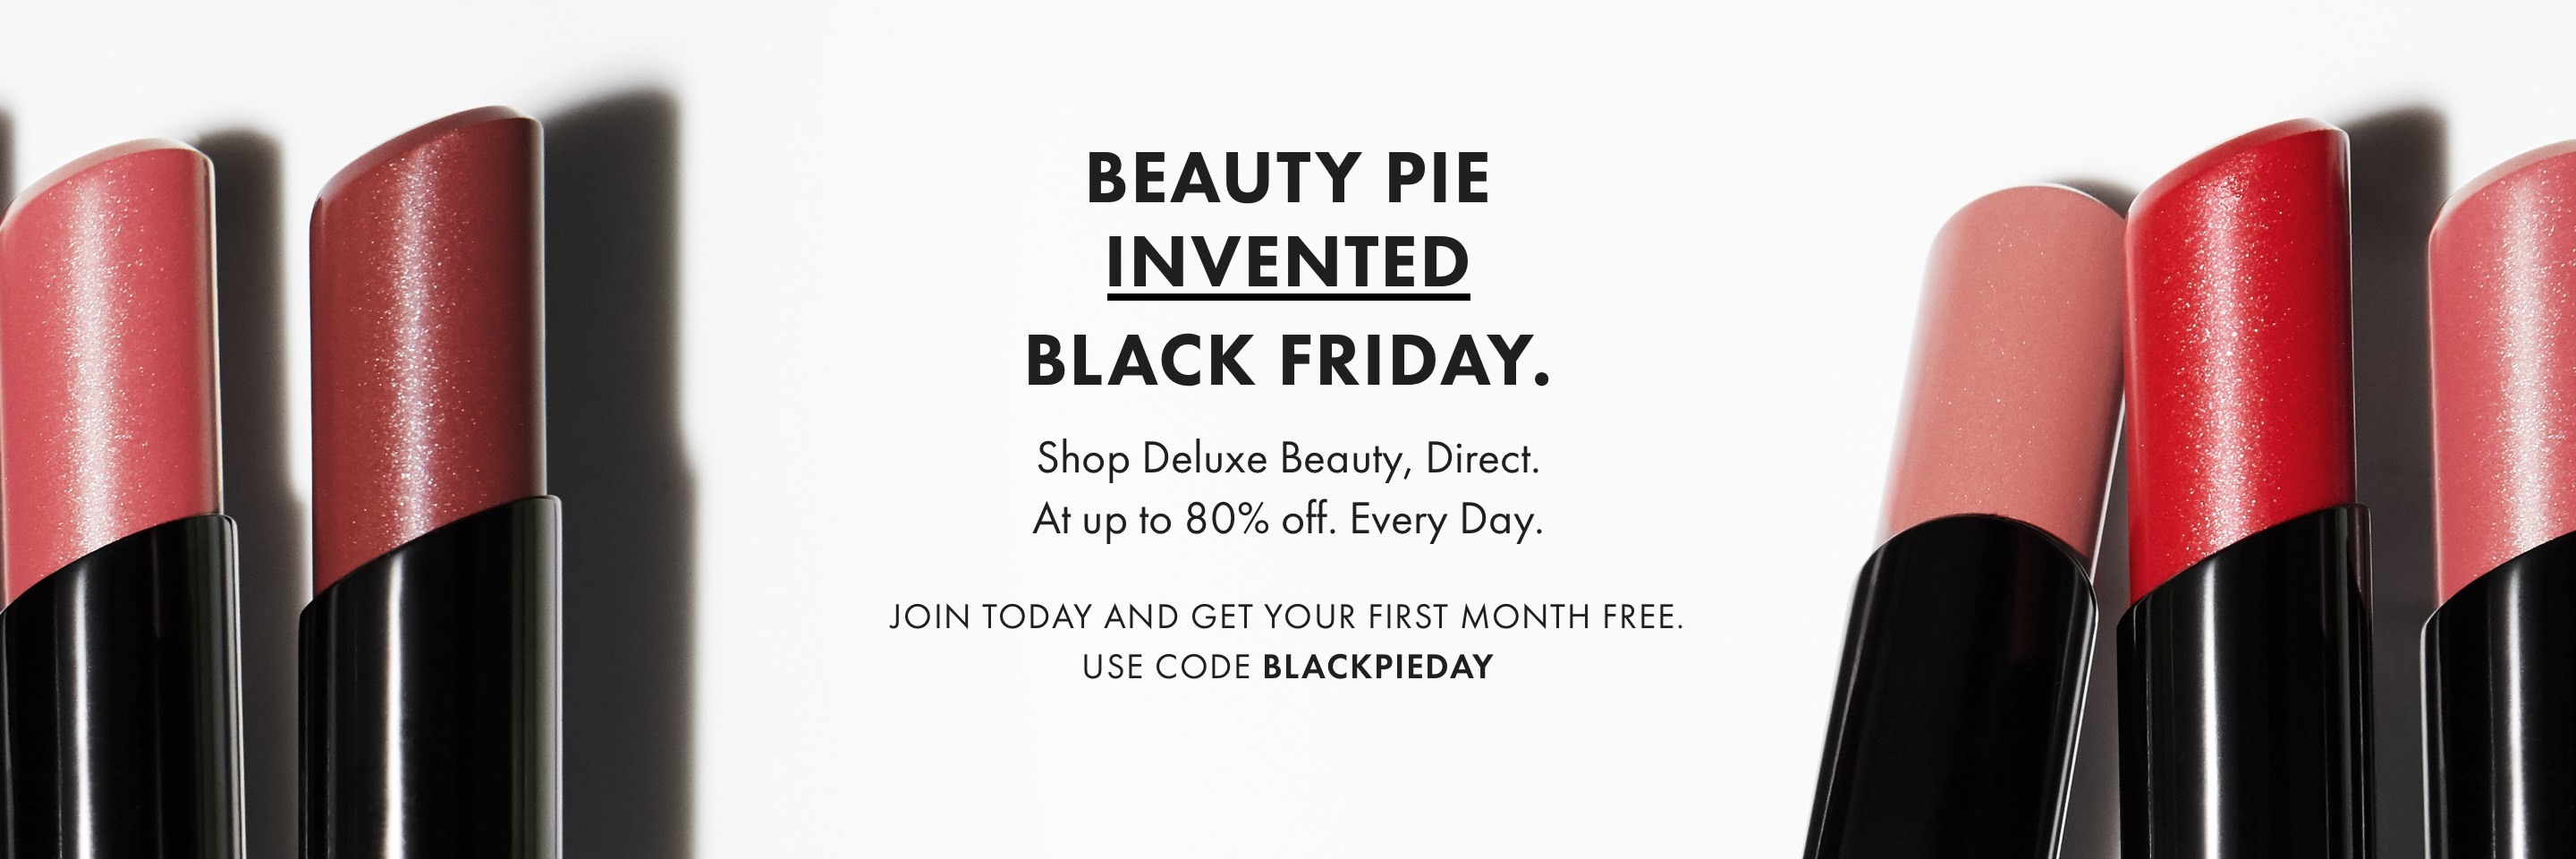 Beauty Pie Invented Black Friday